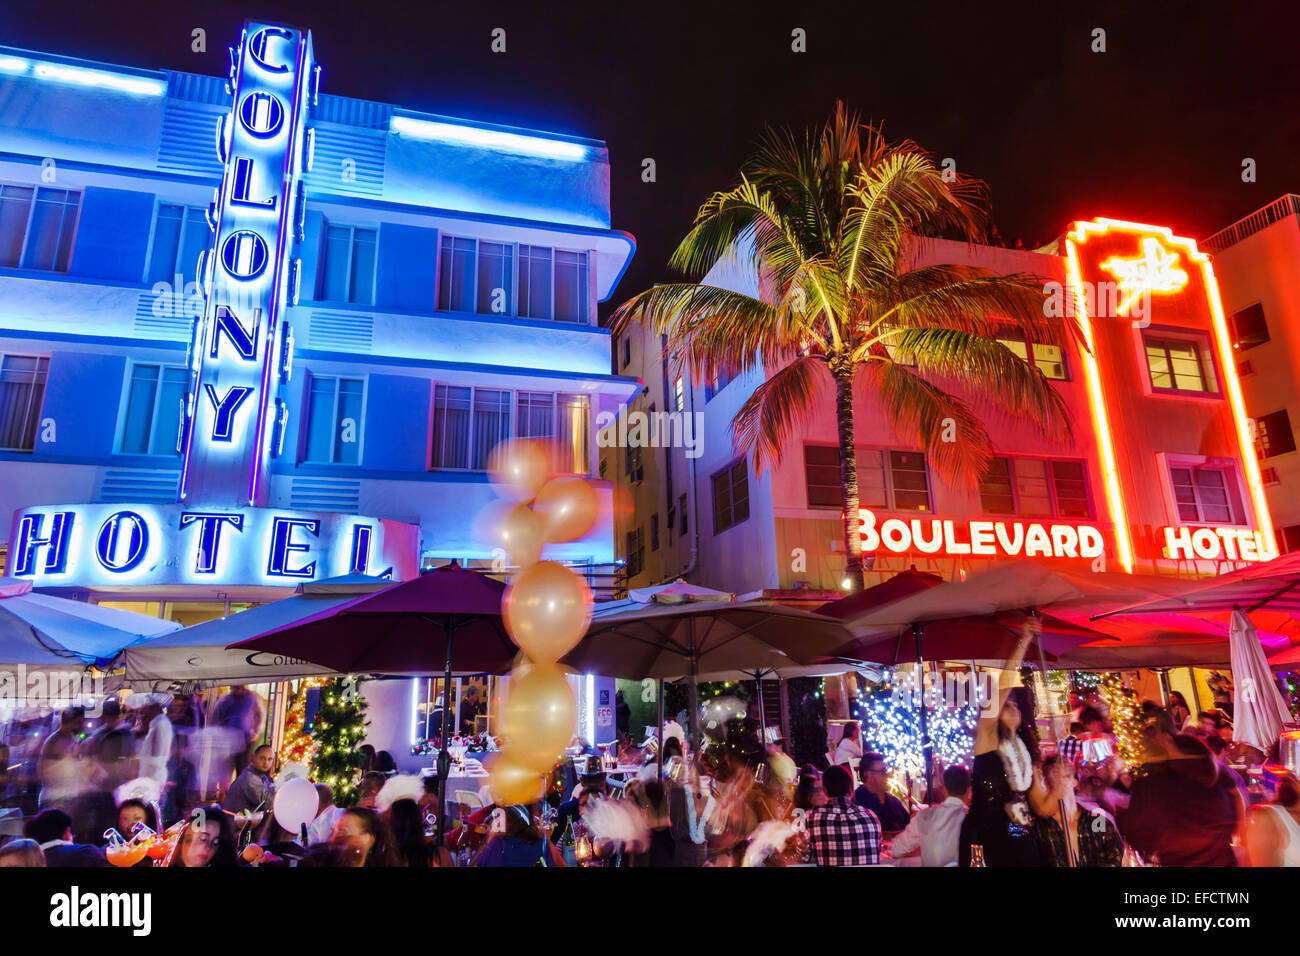 Miami Beach Florida Art Deco District Ocean Drive New Years Eve Night Nightlife Restaurant Alfresco Dining Tables Colony Hotel Boulevard Neon Sign